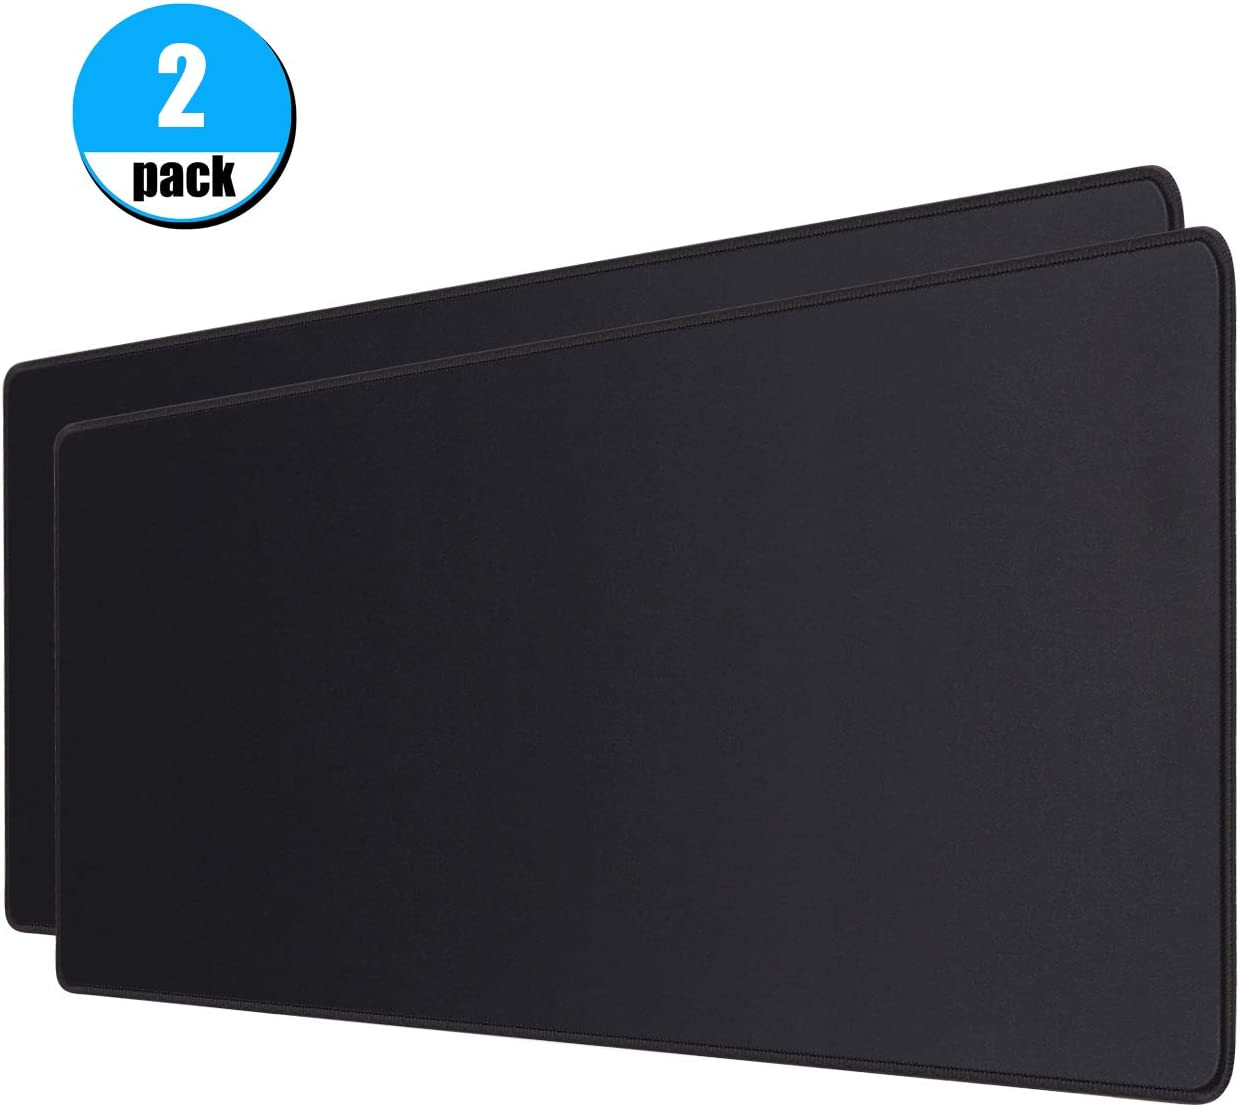 Office /& Home,31.5x11.8inch,Black Mouse Mat Keyboard Pad Mat for Gaming JIKIOU 2 Pack Extended Gaming Mouse Pad with Stitched Edges Large Mouse Pad with Premium-Textured Cloth Non-Slip Rubber Base